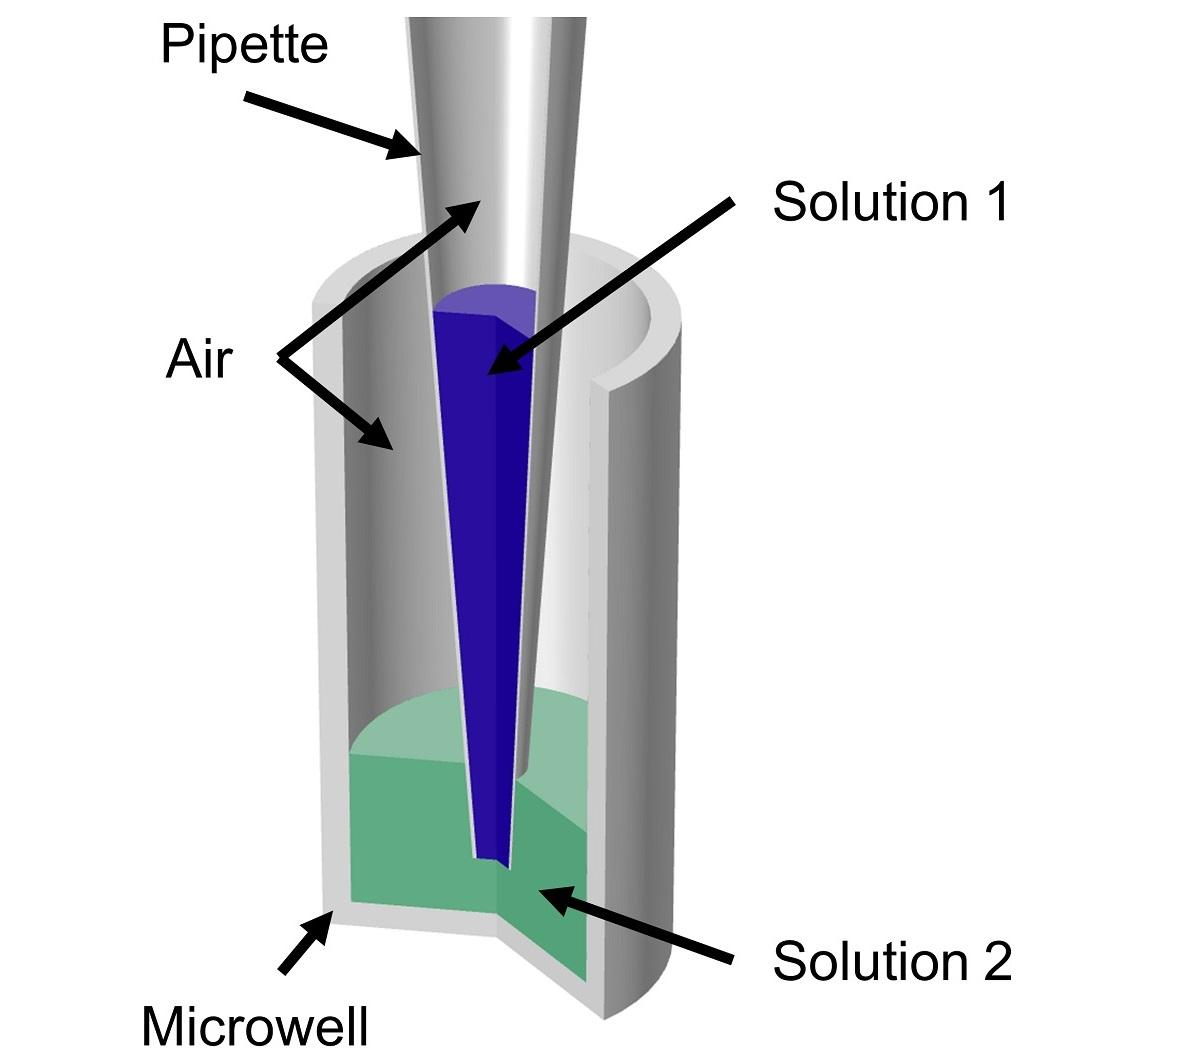 Geometry of a micropipette tip and microwell filled with different solutions